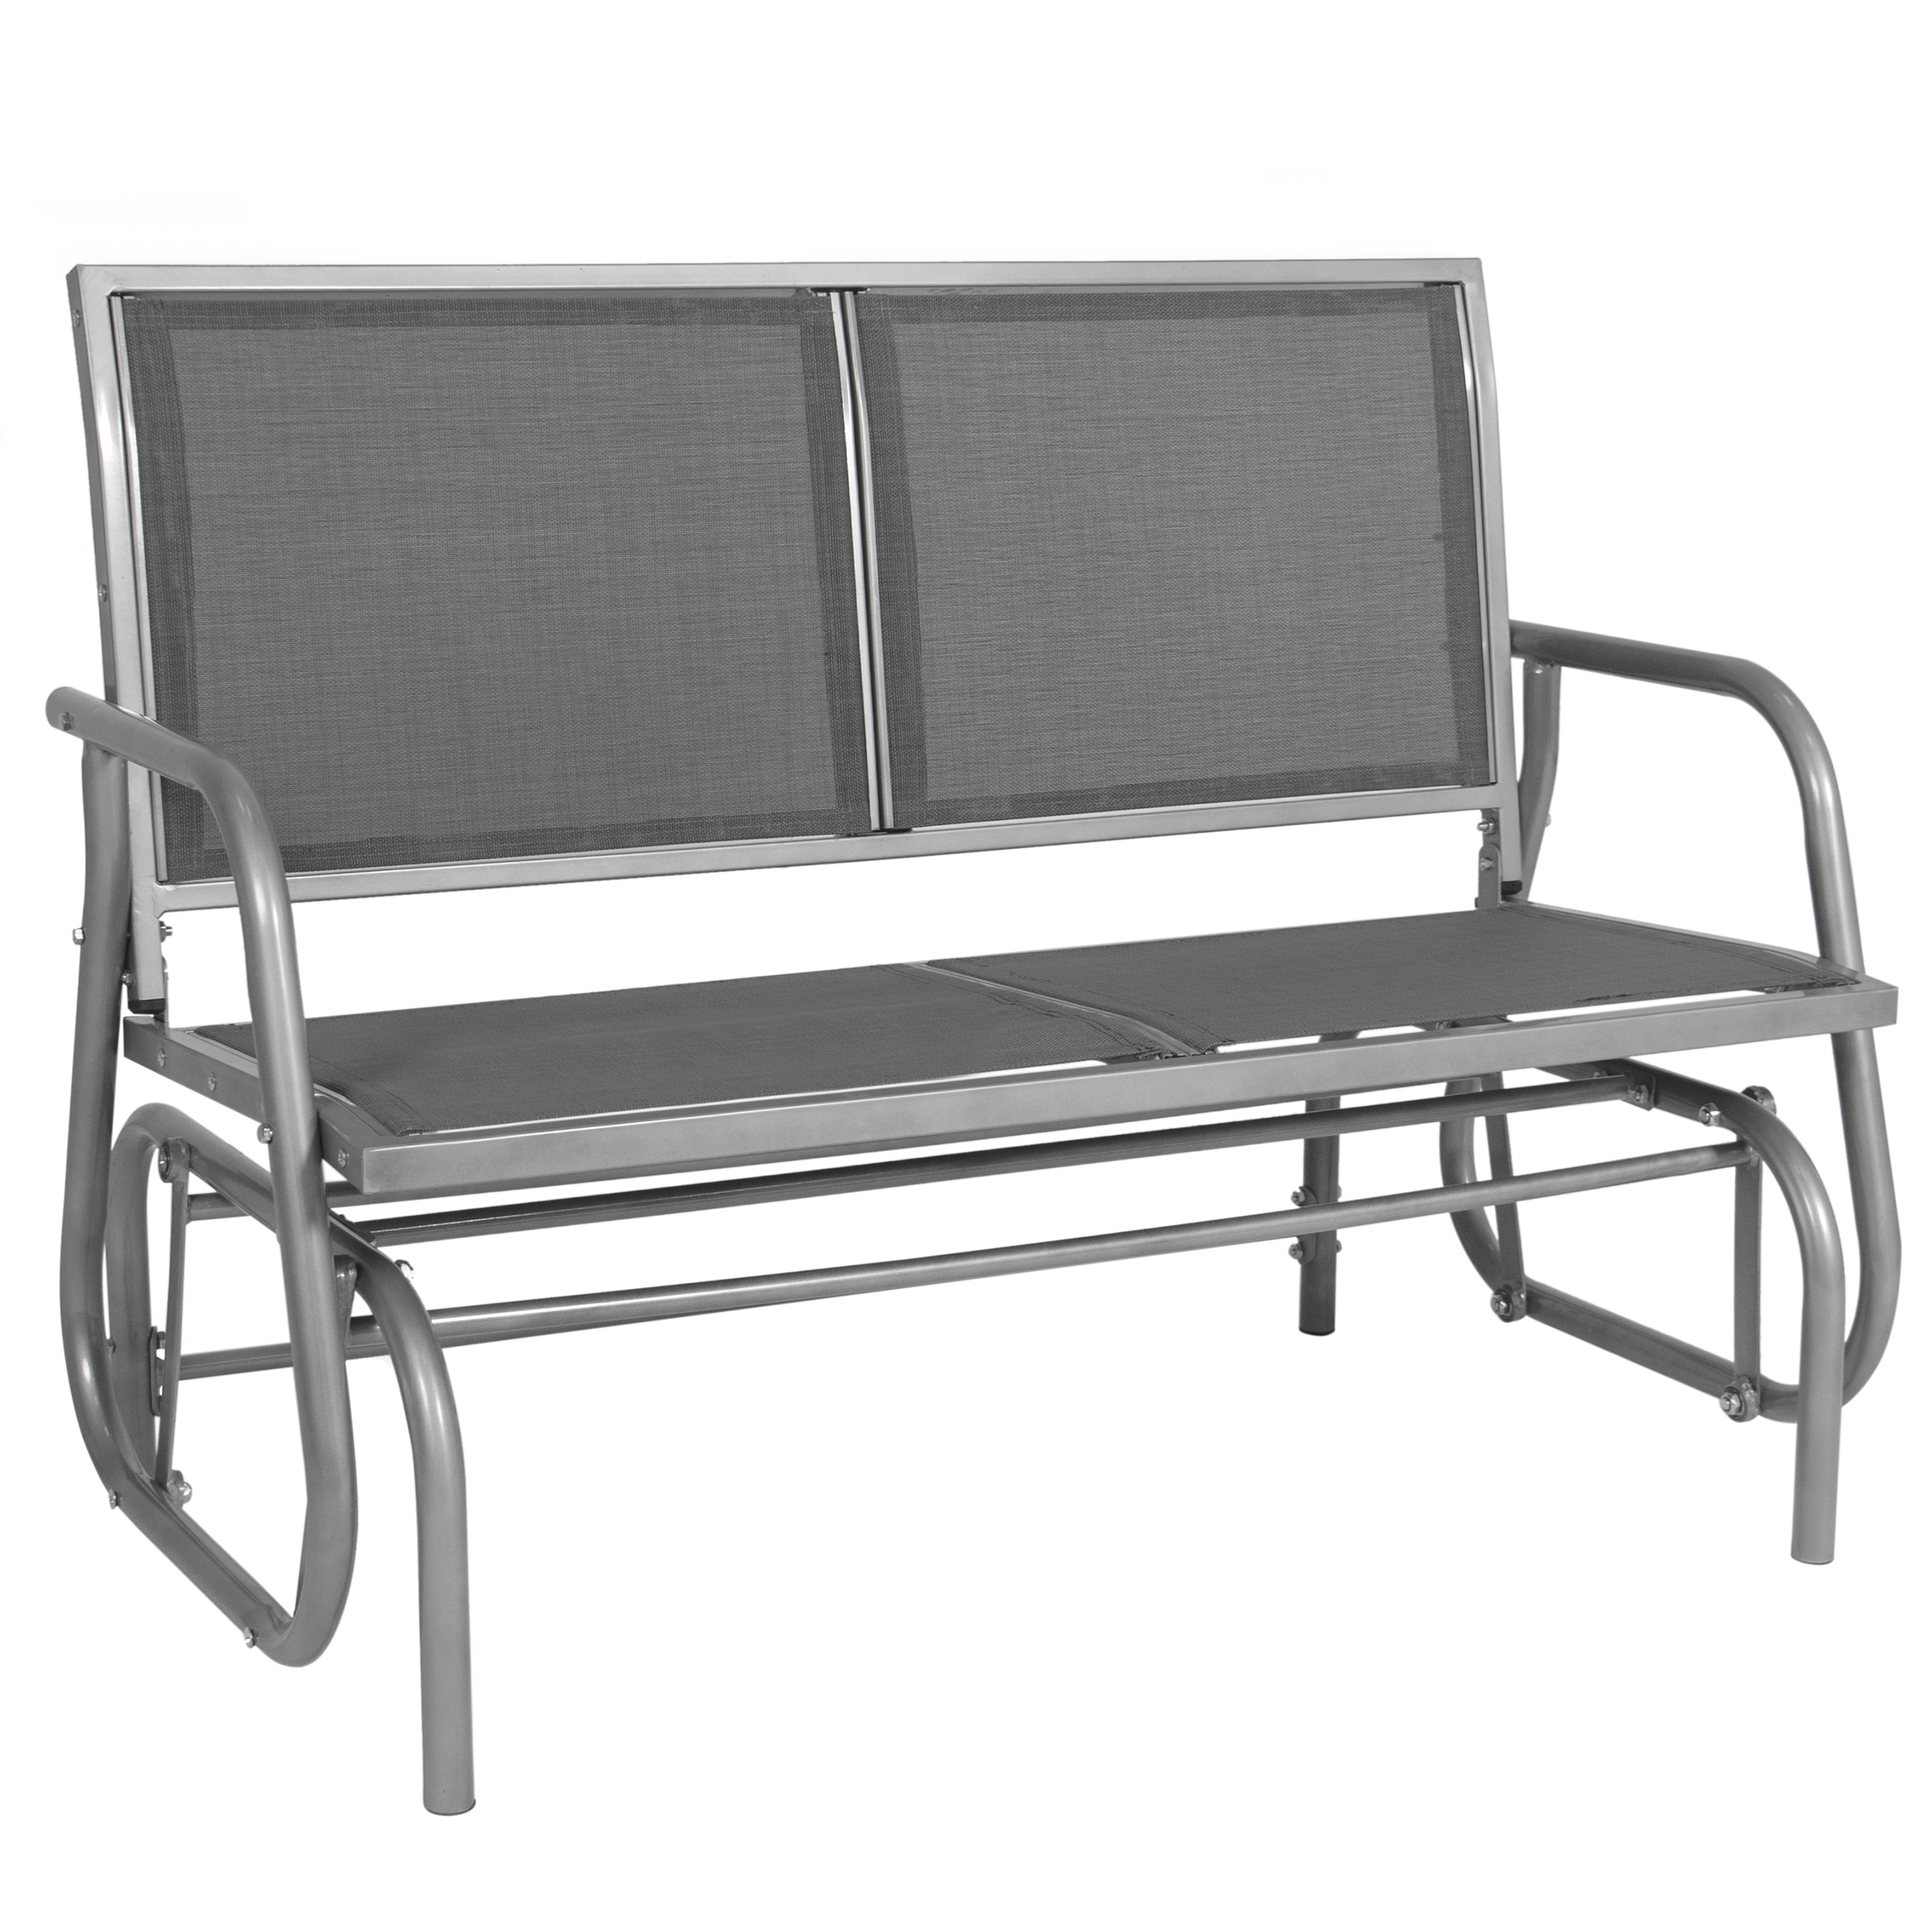 "Best Choice Products 48"" Outdoor Patio Swing Glider Bench Steel"